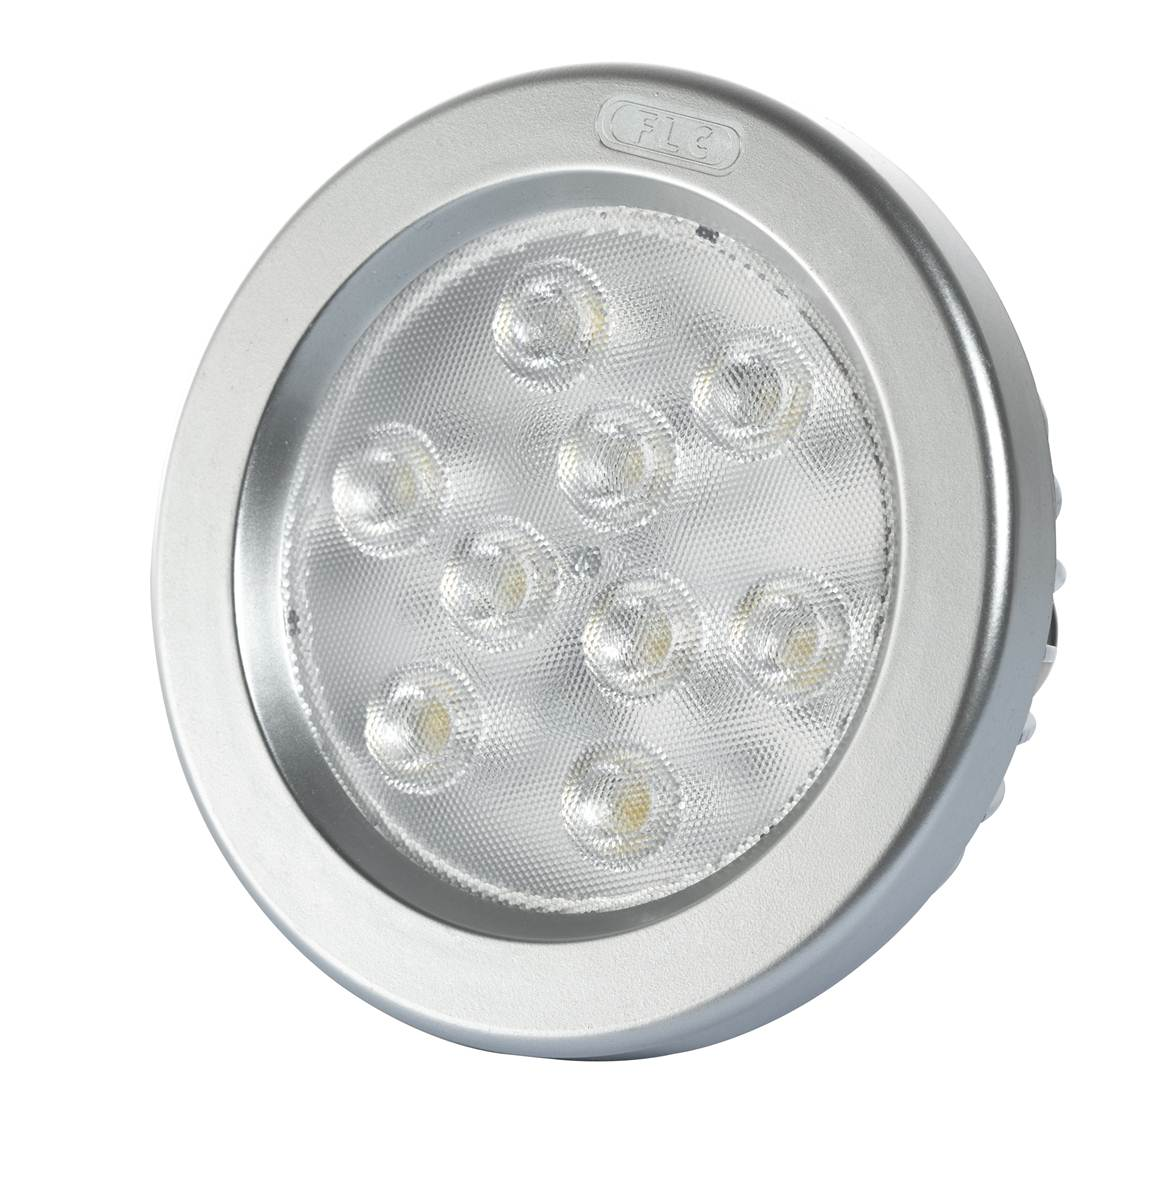 Lâmpada  AR 111 LED   8W 3000K 12V BASE G53 FLC